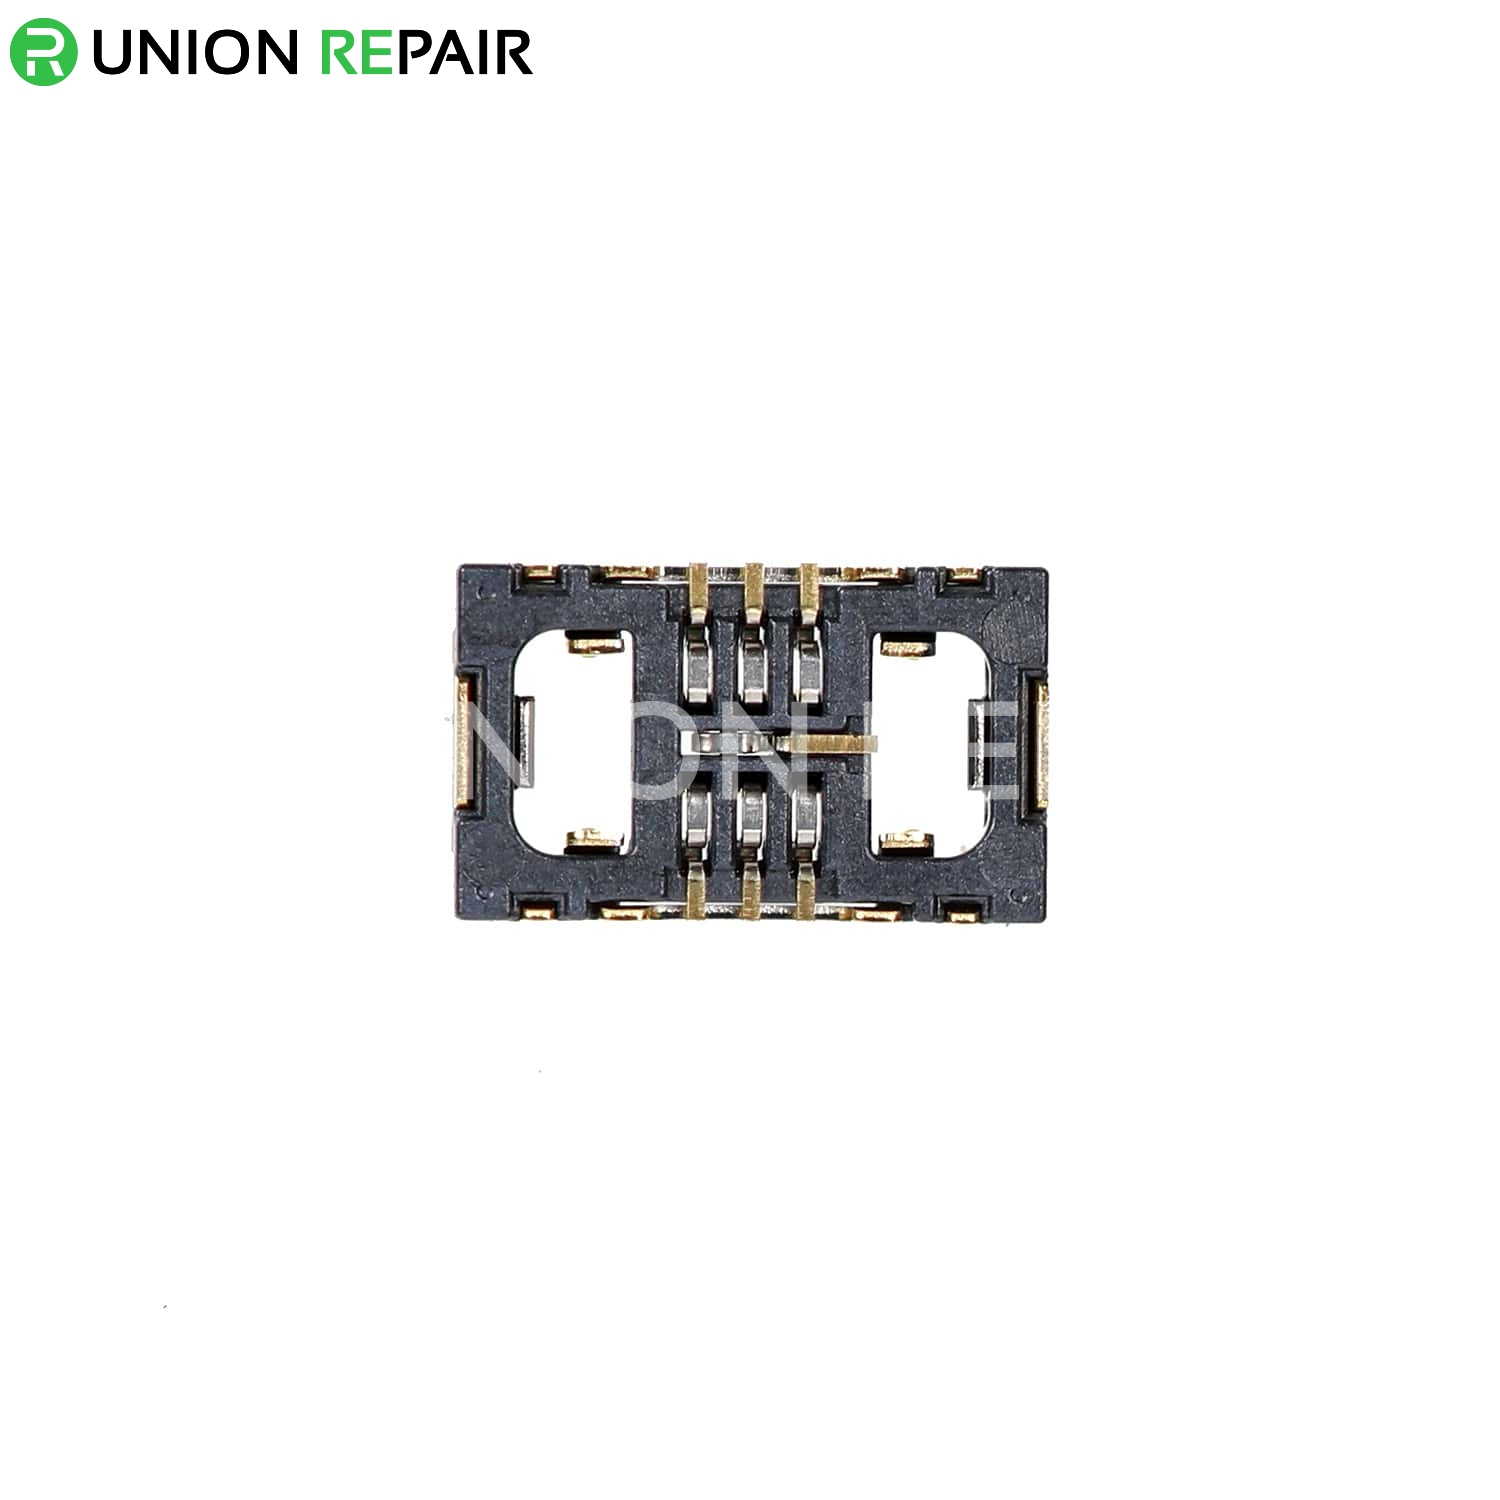 Replacement for iPhone 11 NFC Antenna Connector Port Onboard